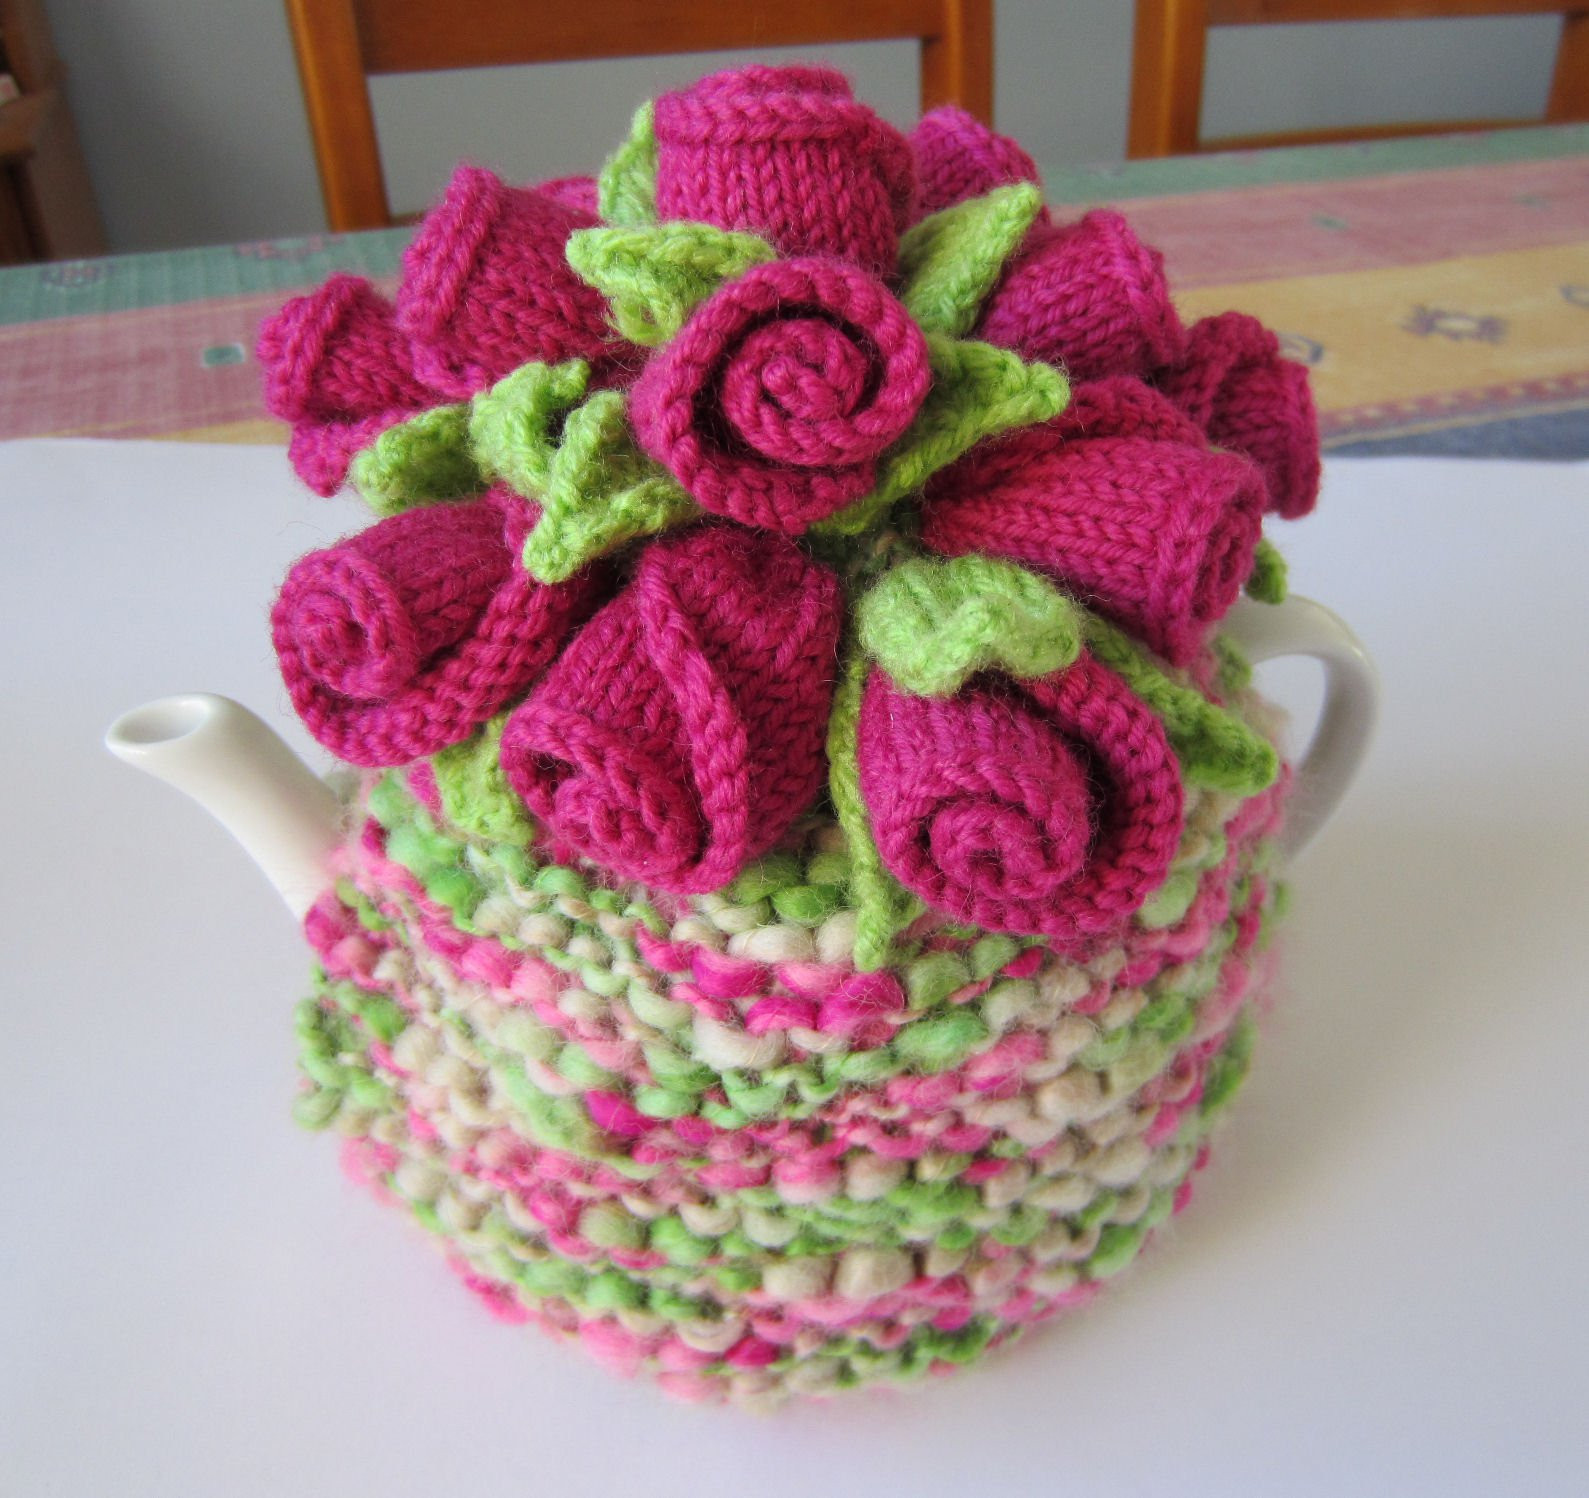 Unique 20 Handmade Tea Cozy with Patterns Page 2 Of 3 Free Knitting and Crochet Patterns Of Marvelous 44 Ideas Free Knitting and Crochet Patterns